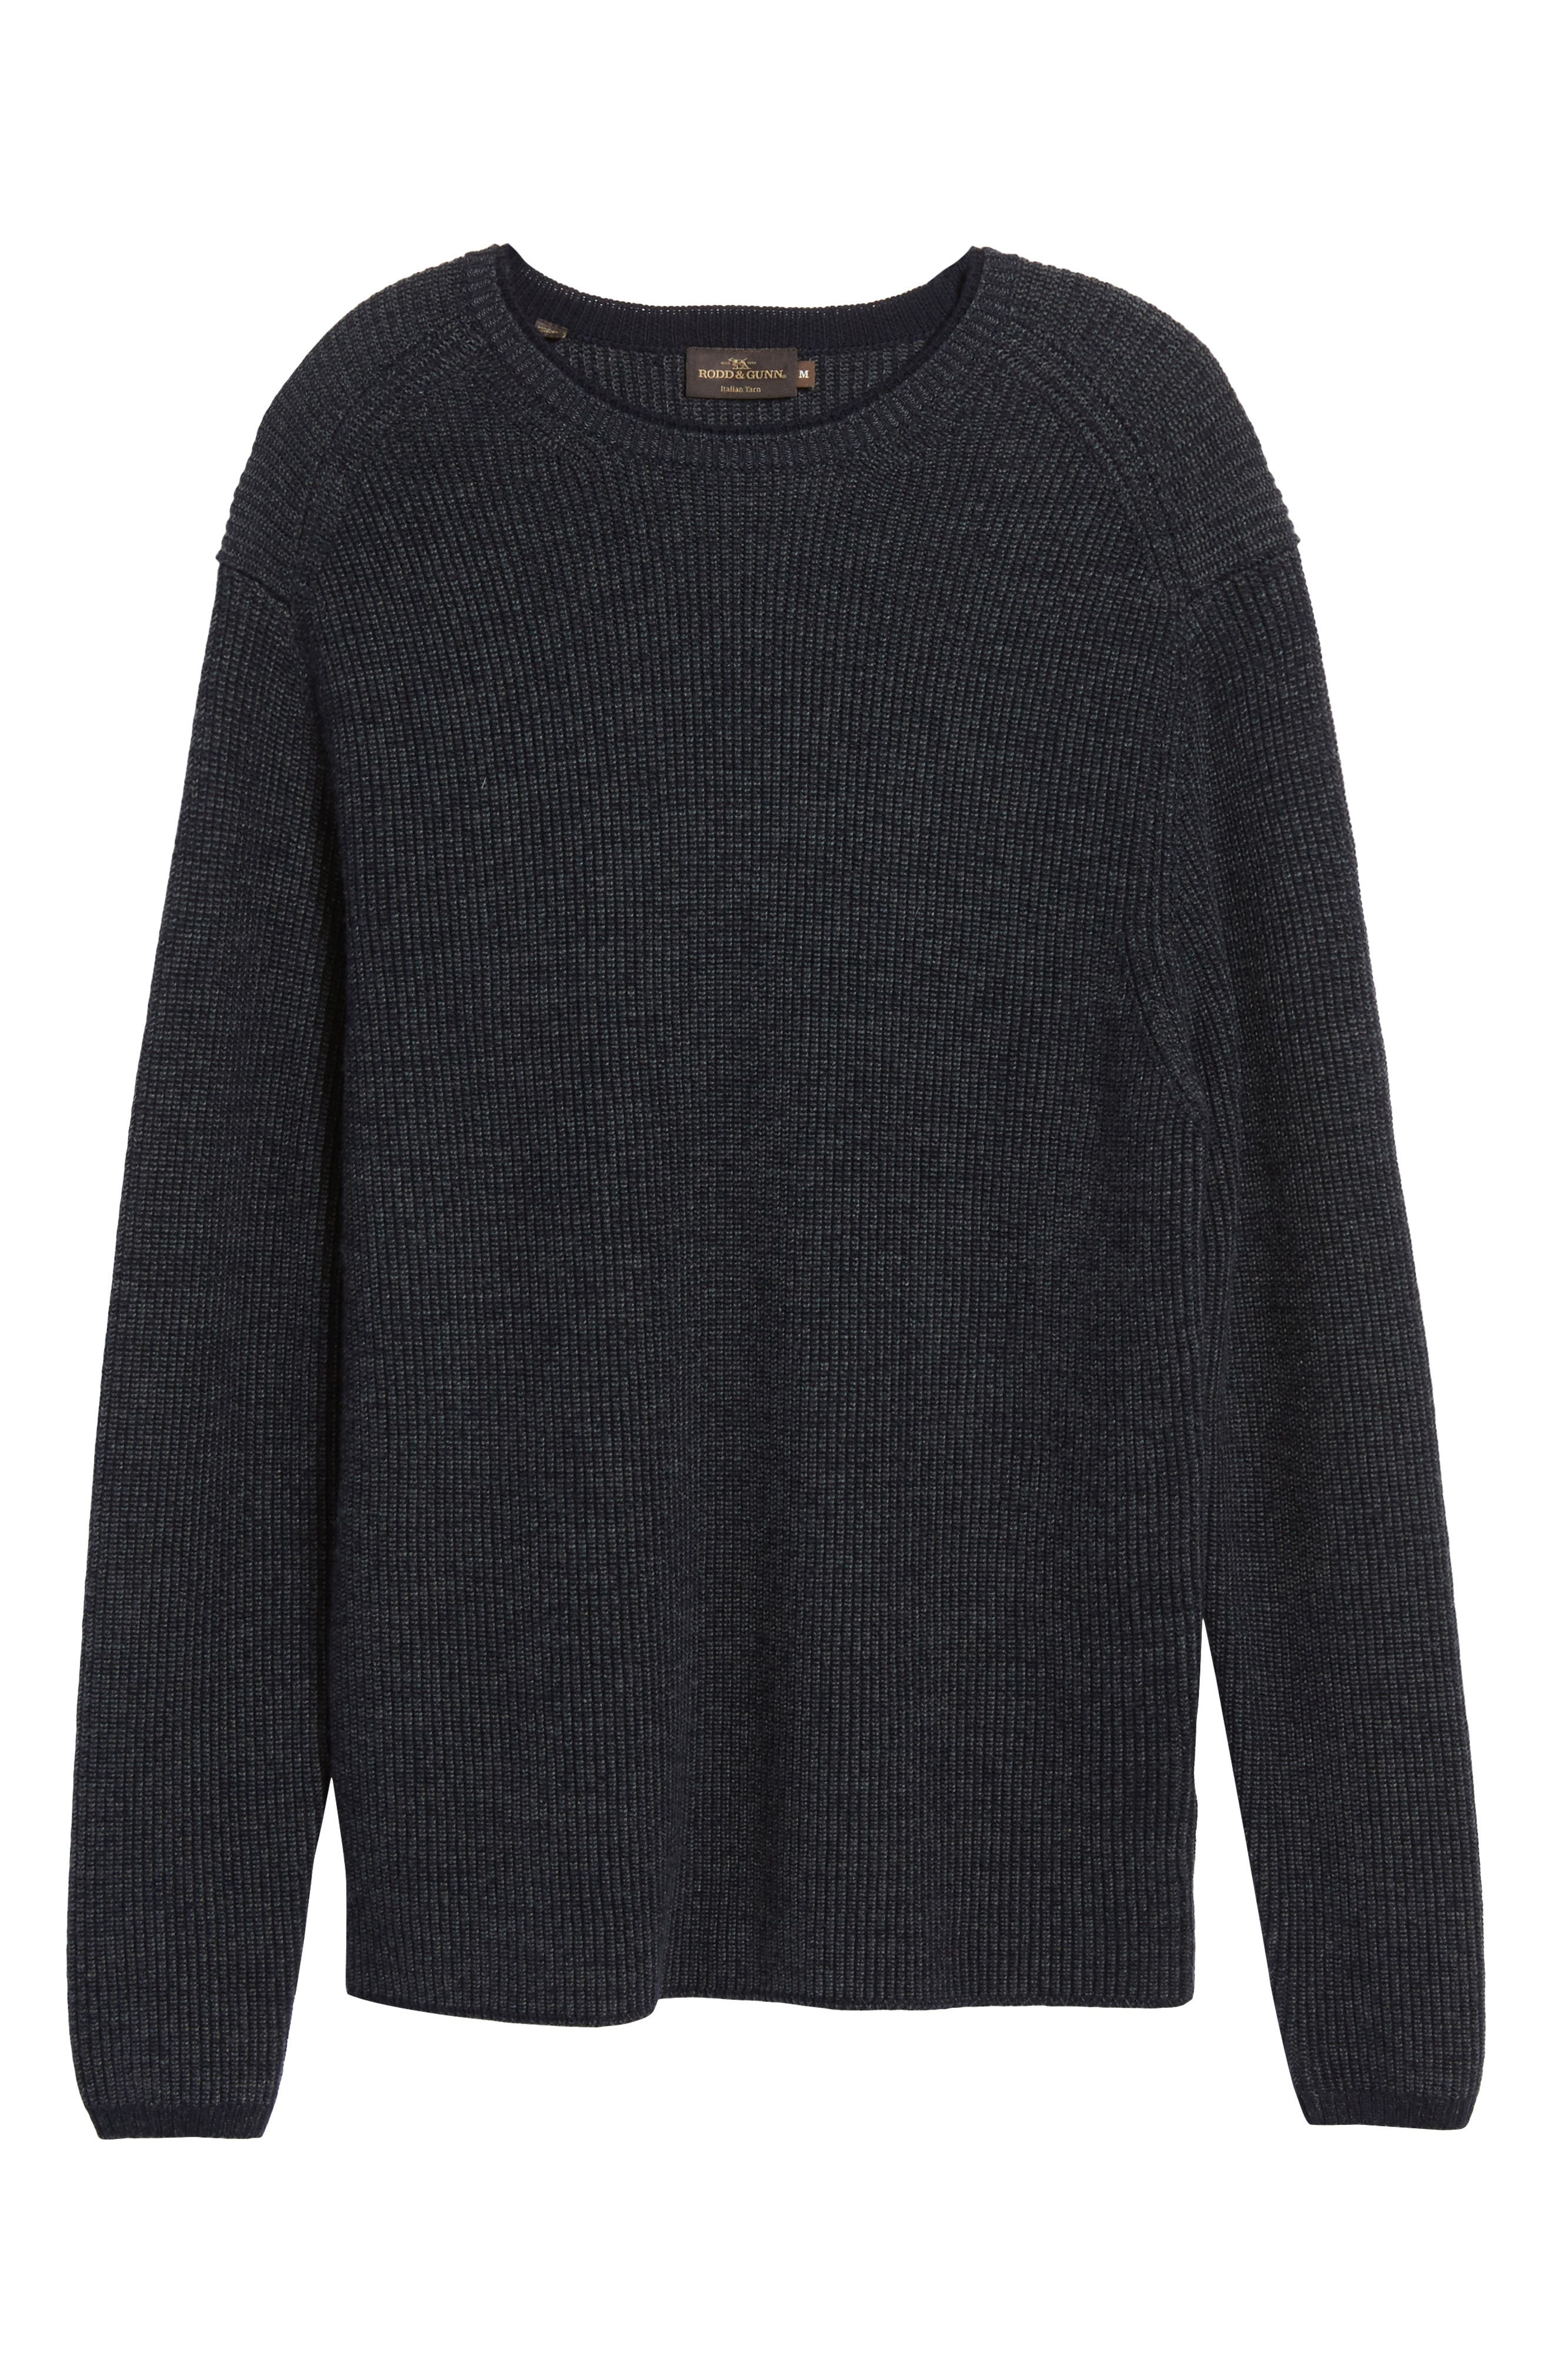 Whalers Bay Ribbed Merino Wool Sweater,                             Alternate thumbnail 6, color,                             470